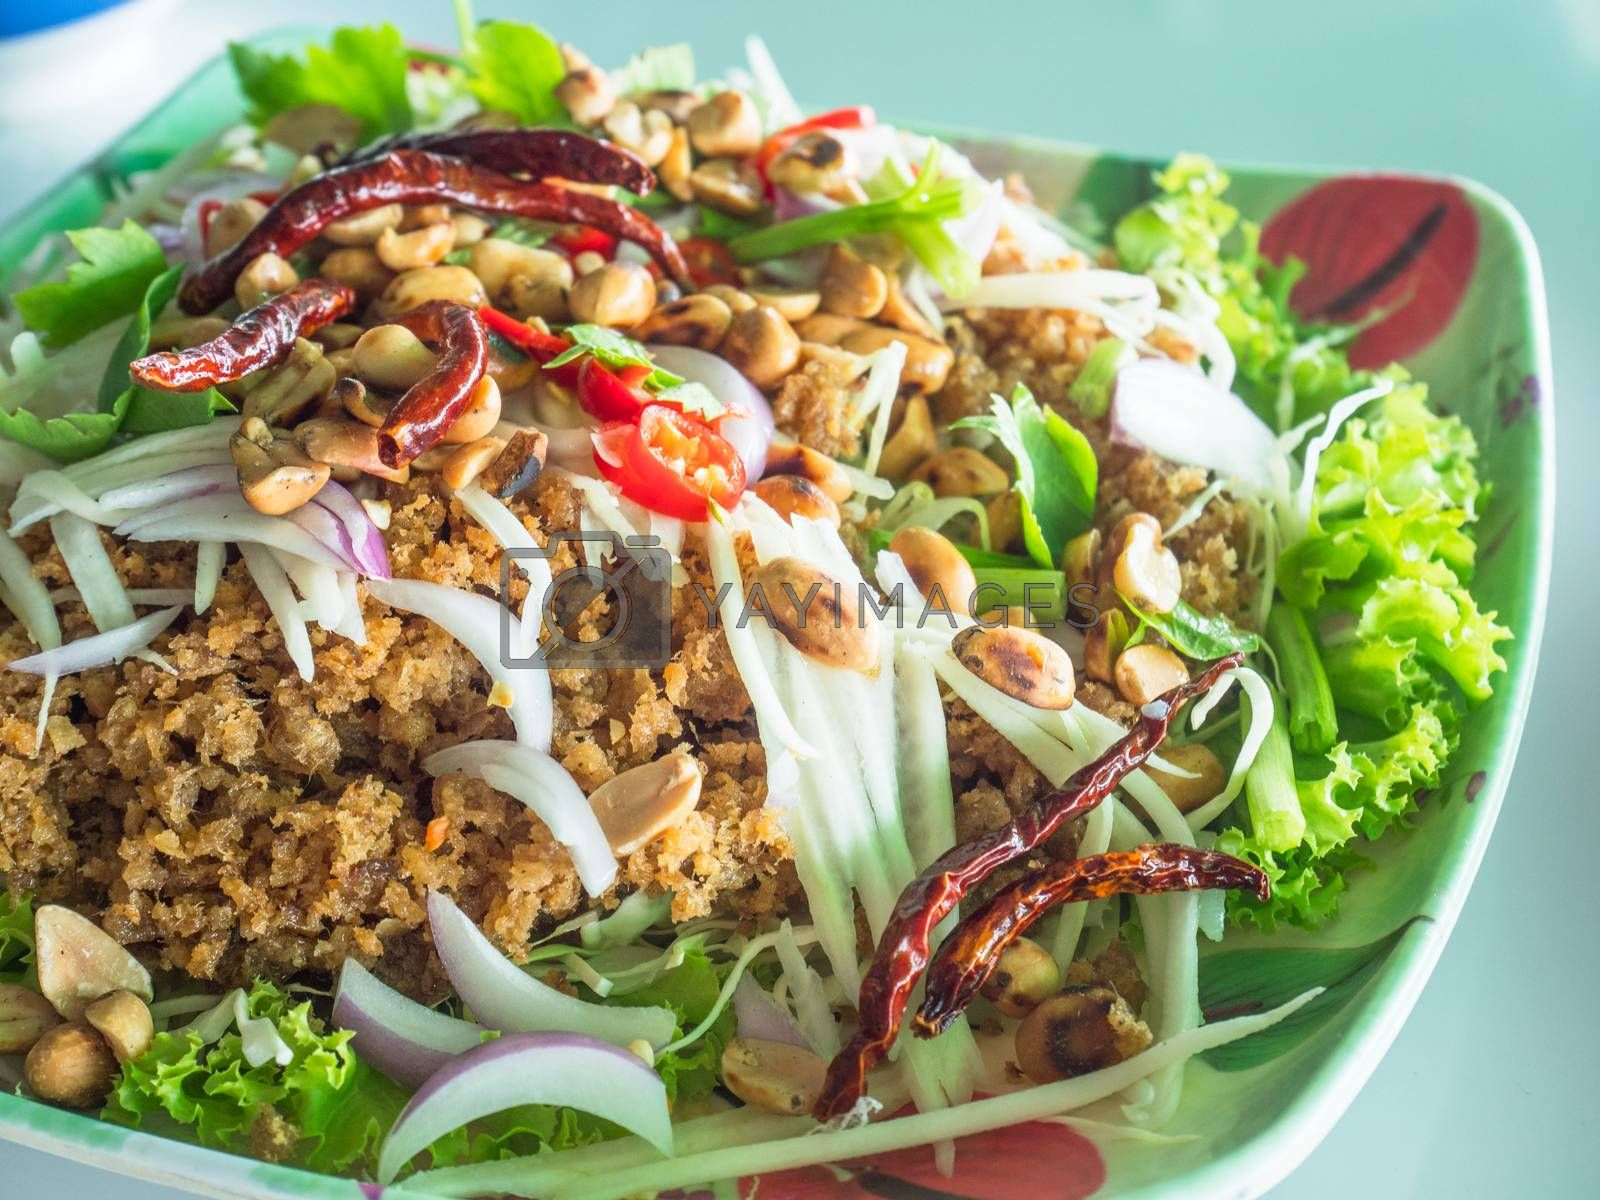 Yam pla duk foo, a classic Thai meal, consisting of minced and fried catfish, shredded green papaya, fresh and dried chili pepper, dry roasted peanuts, raw onion, salad and a dressing made from lime juice and garlic. Shallow depth of field.